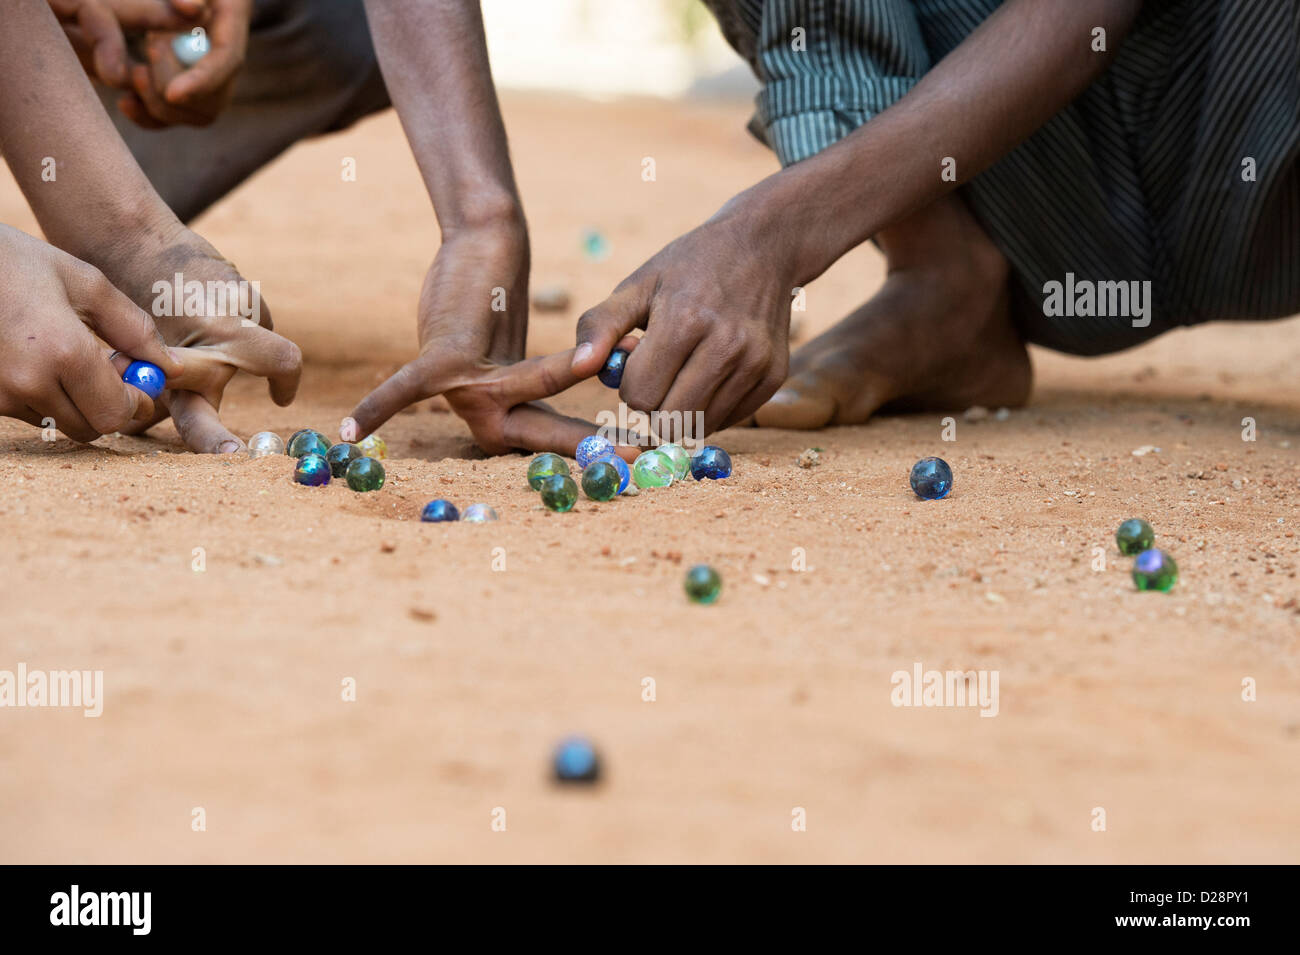 Indian boys playing marbles in a rural Indian village. Andhra Pradesh, India - Stock Image